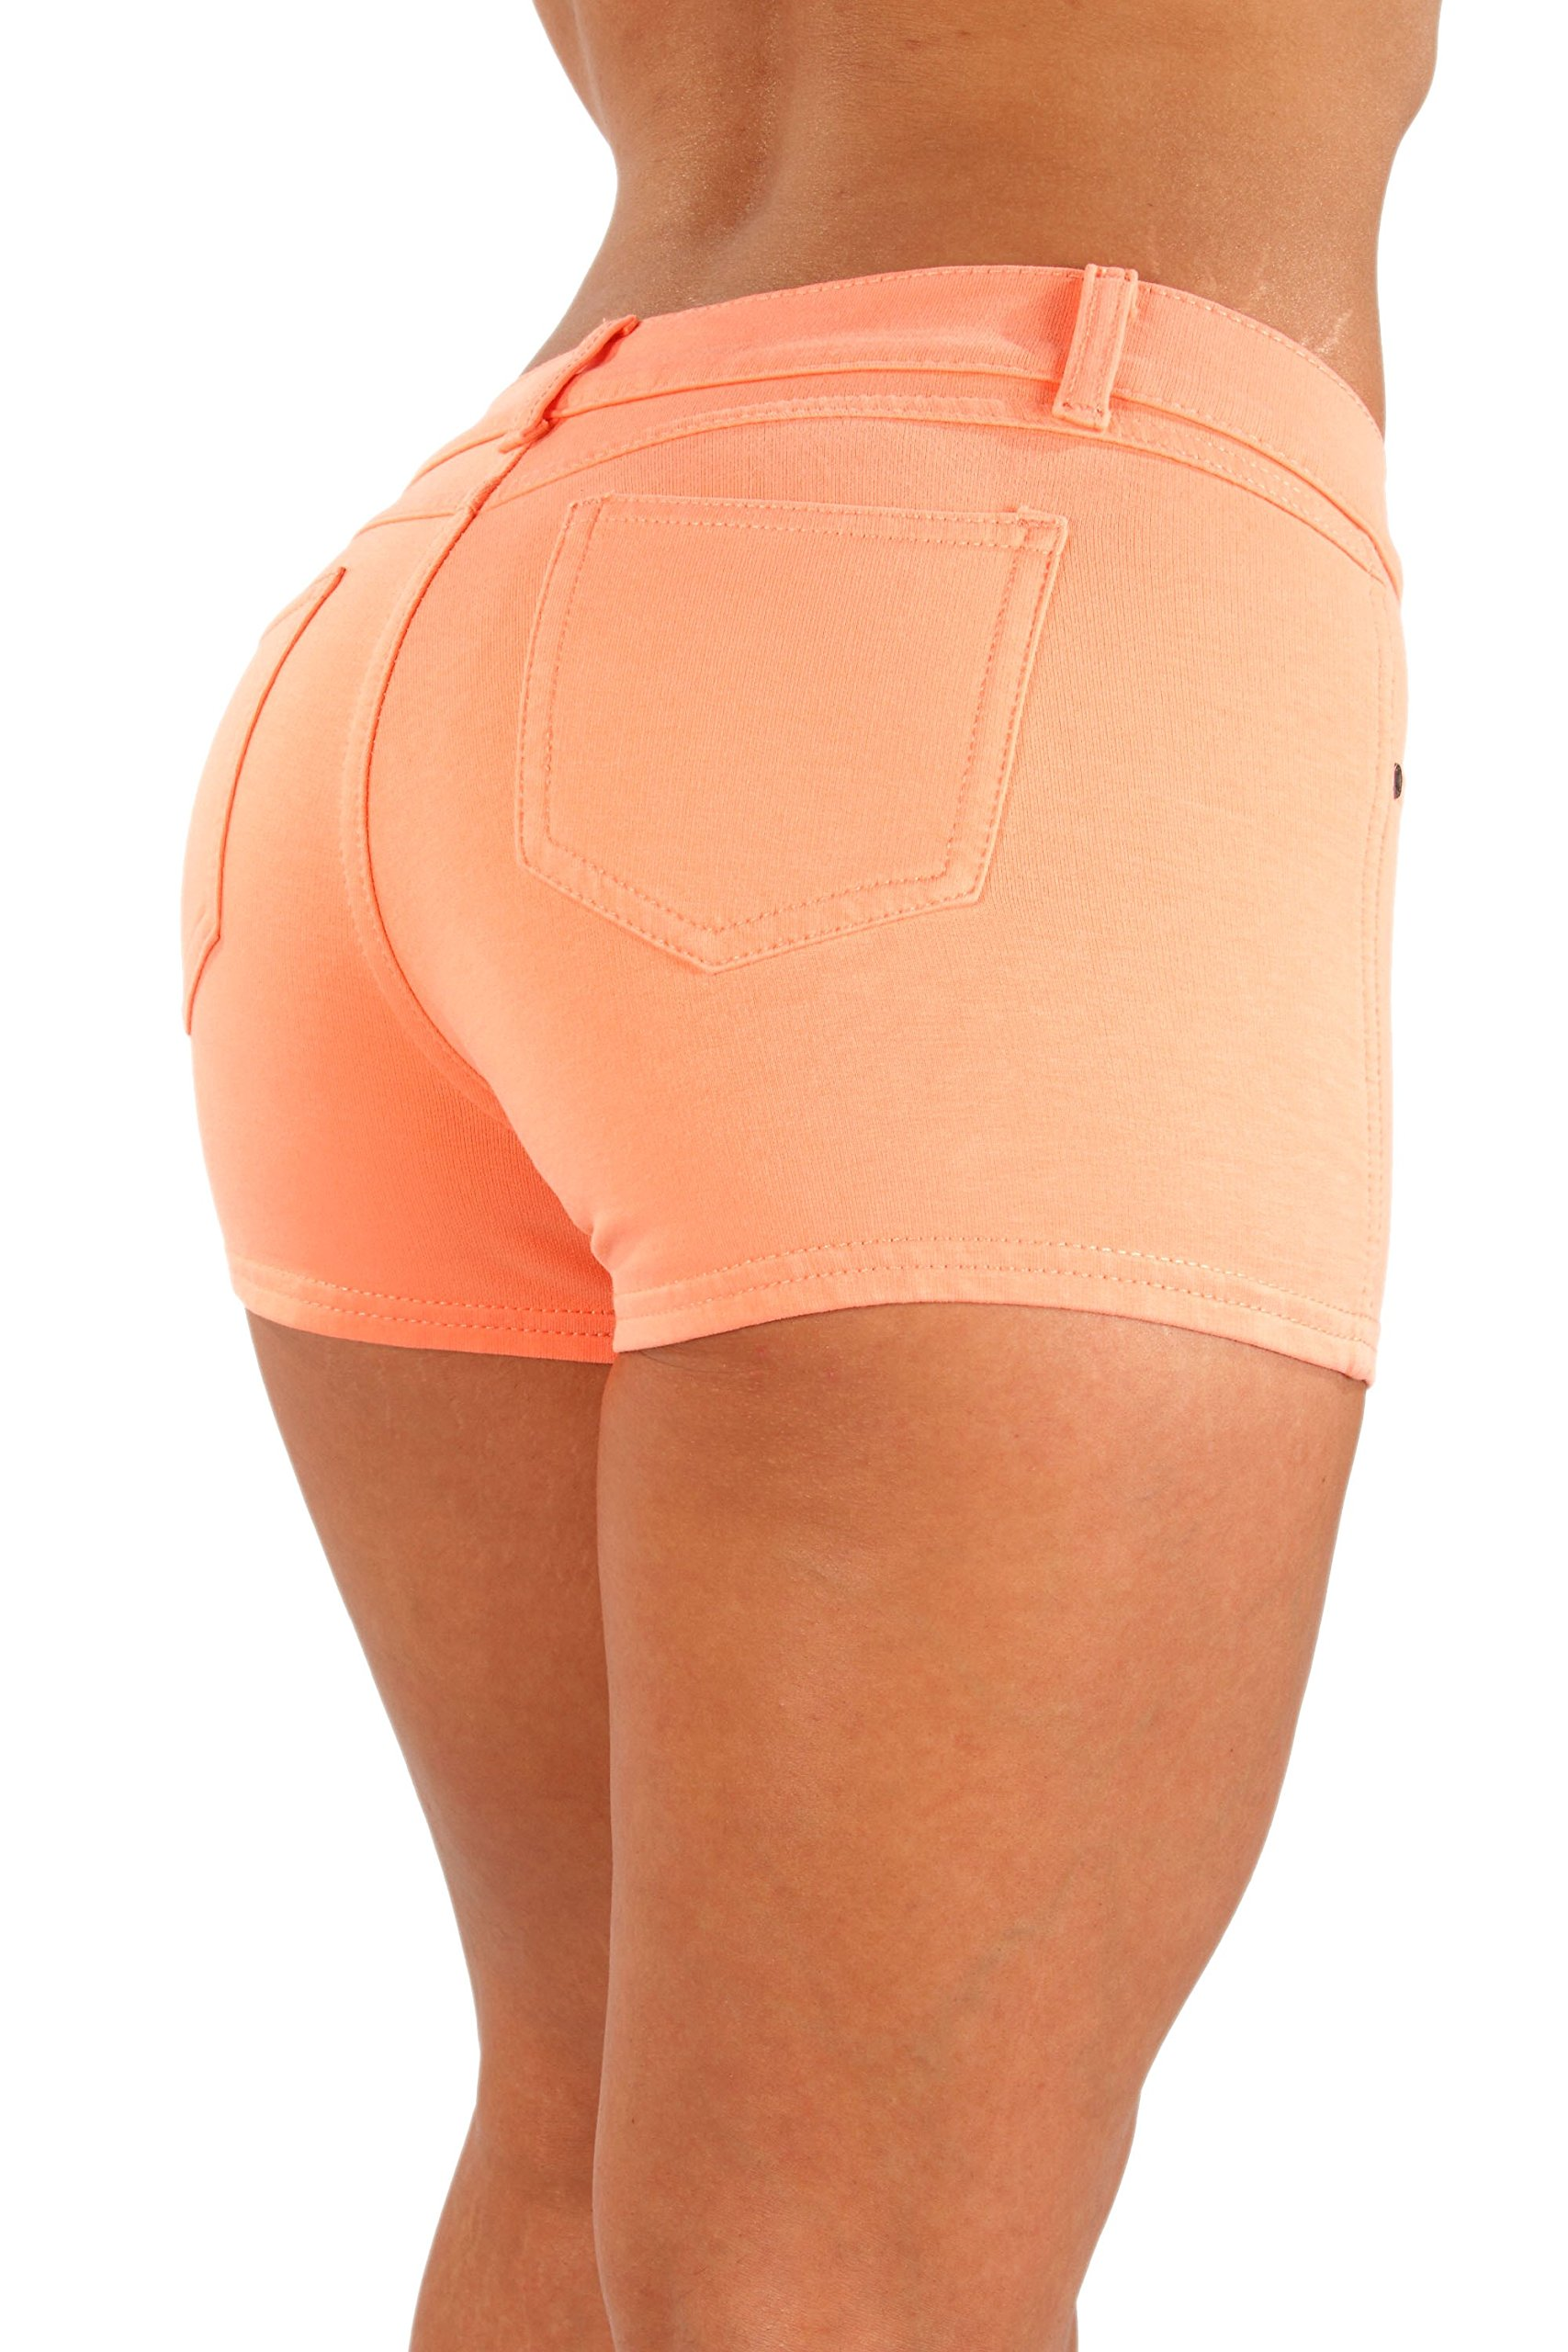 Fashion2Love IF-267-Basic butt lifting French Terry Booty Shorts - 10 Colors available !!!